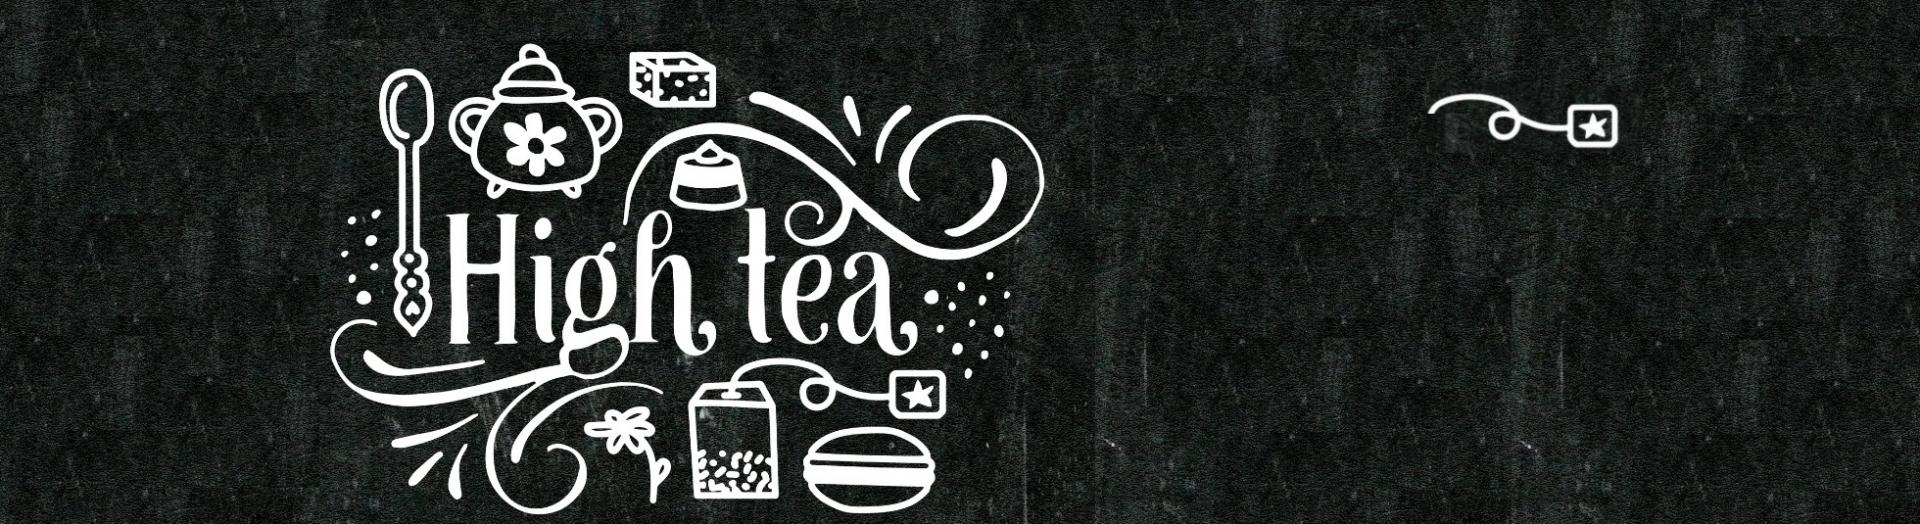 high tea website